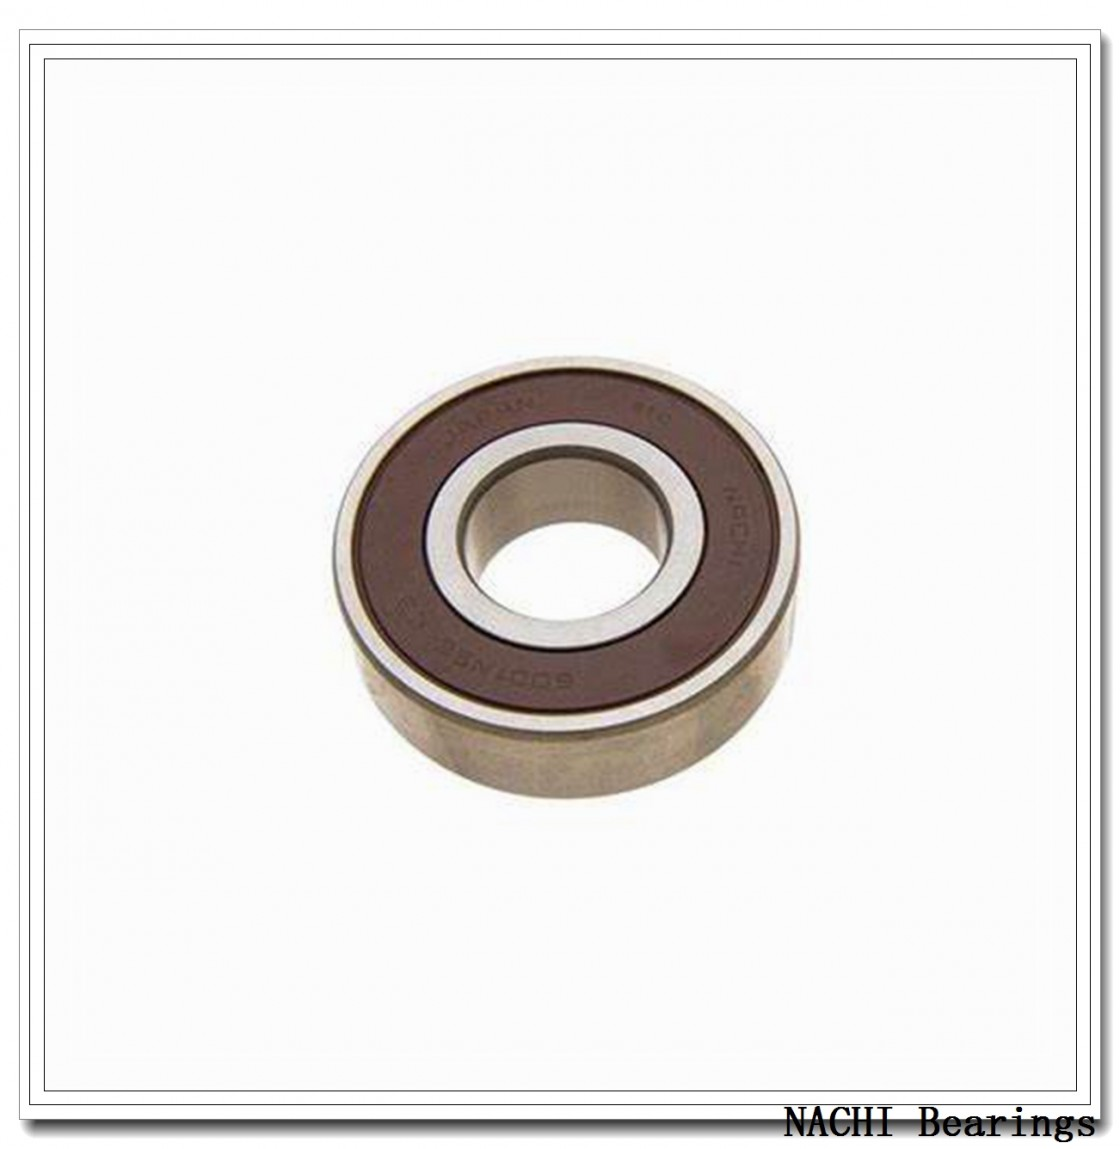 NACHI 6013NKE deep groove ball bearings